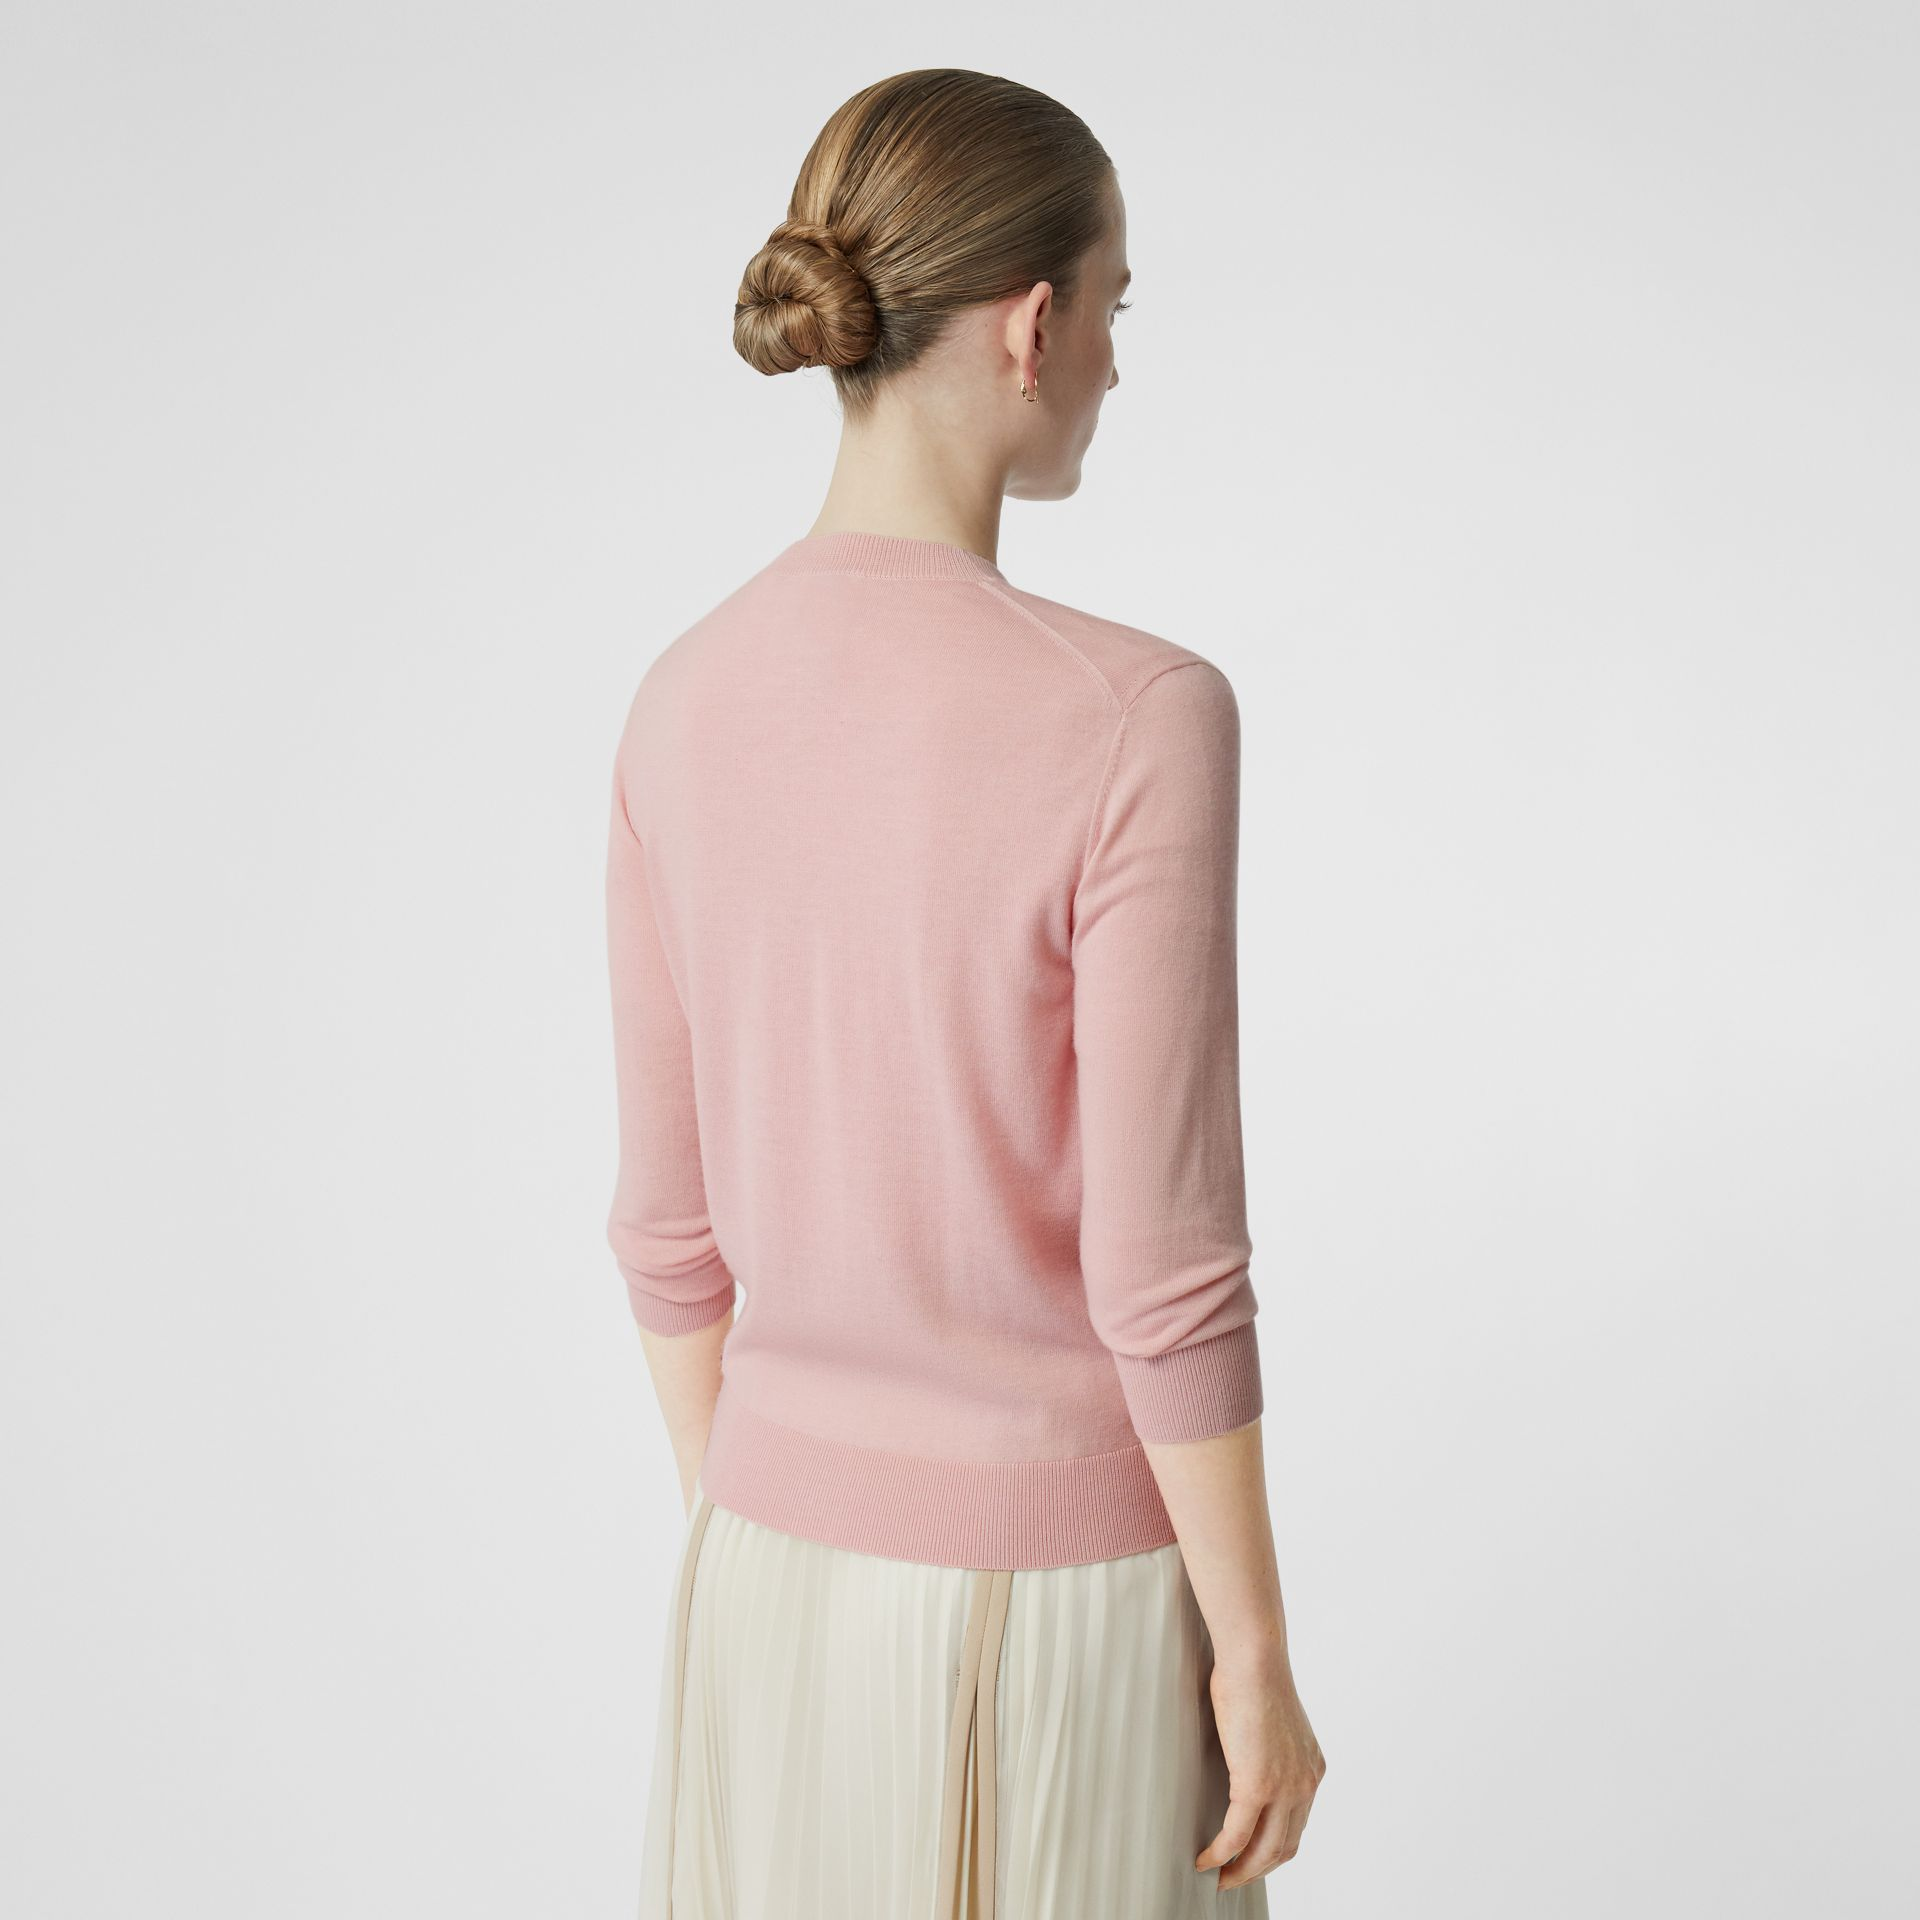 Monogram Motif Cashmere Cardigan in Pink - Women | Burberry - gallery image 2